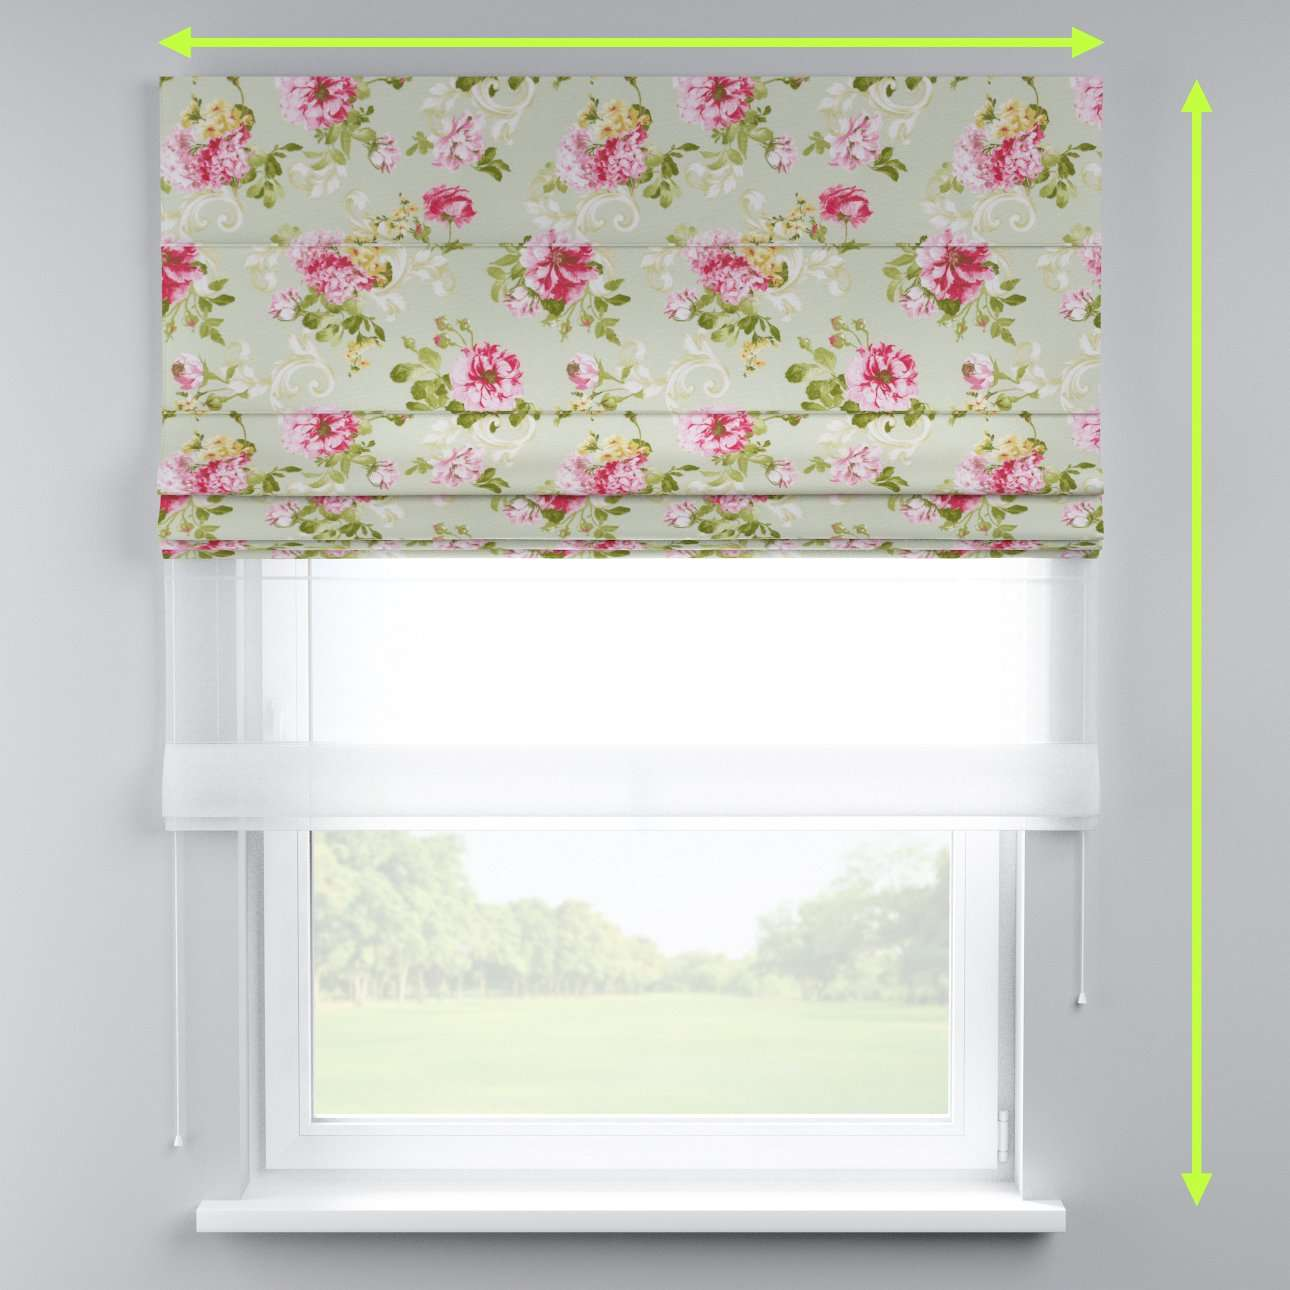 Voile and fabric roman blind (DUO II) in collection Flowers, fabric: 311-10